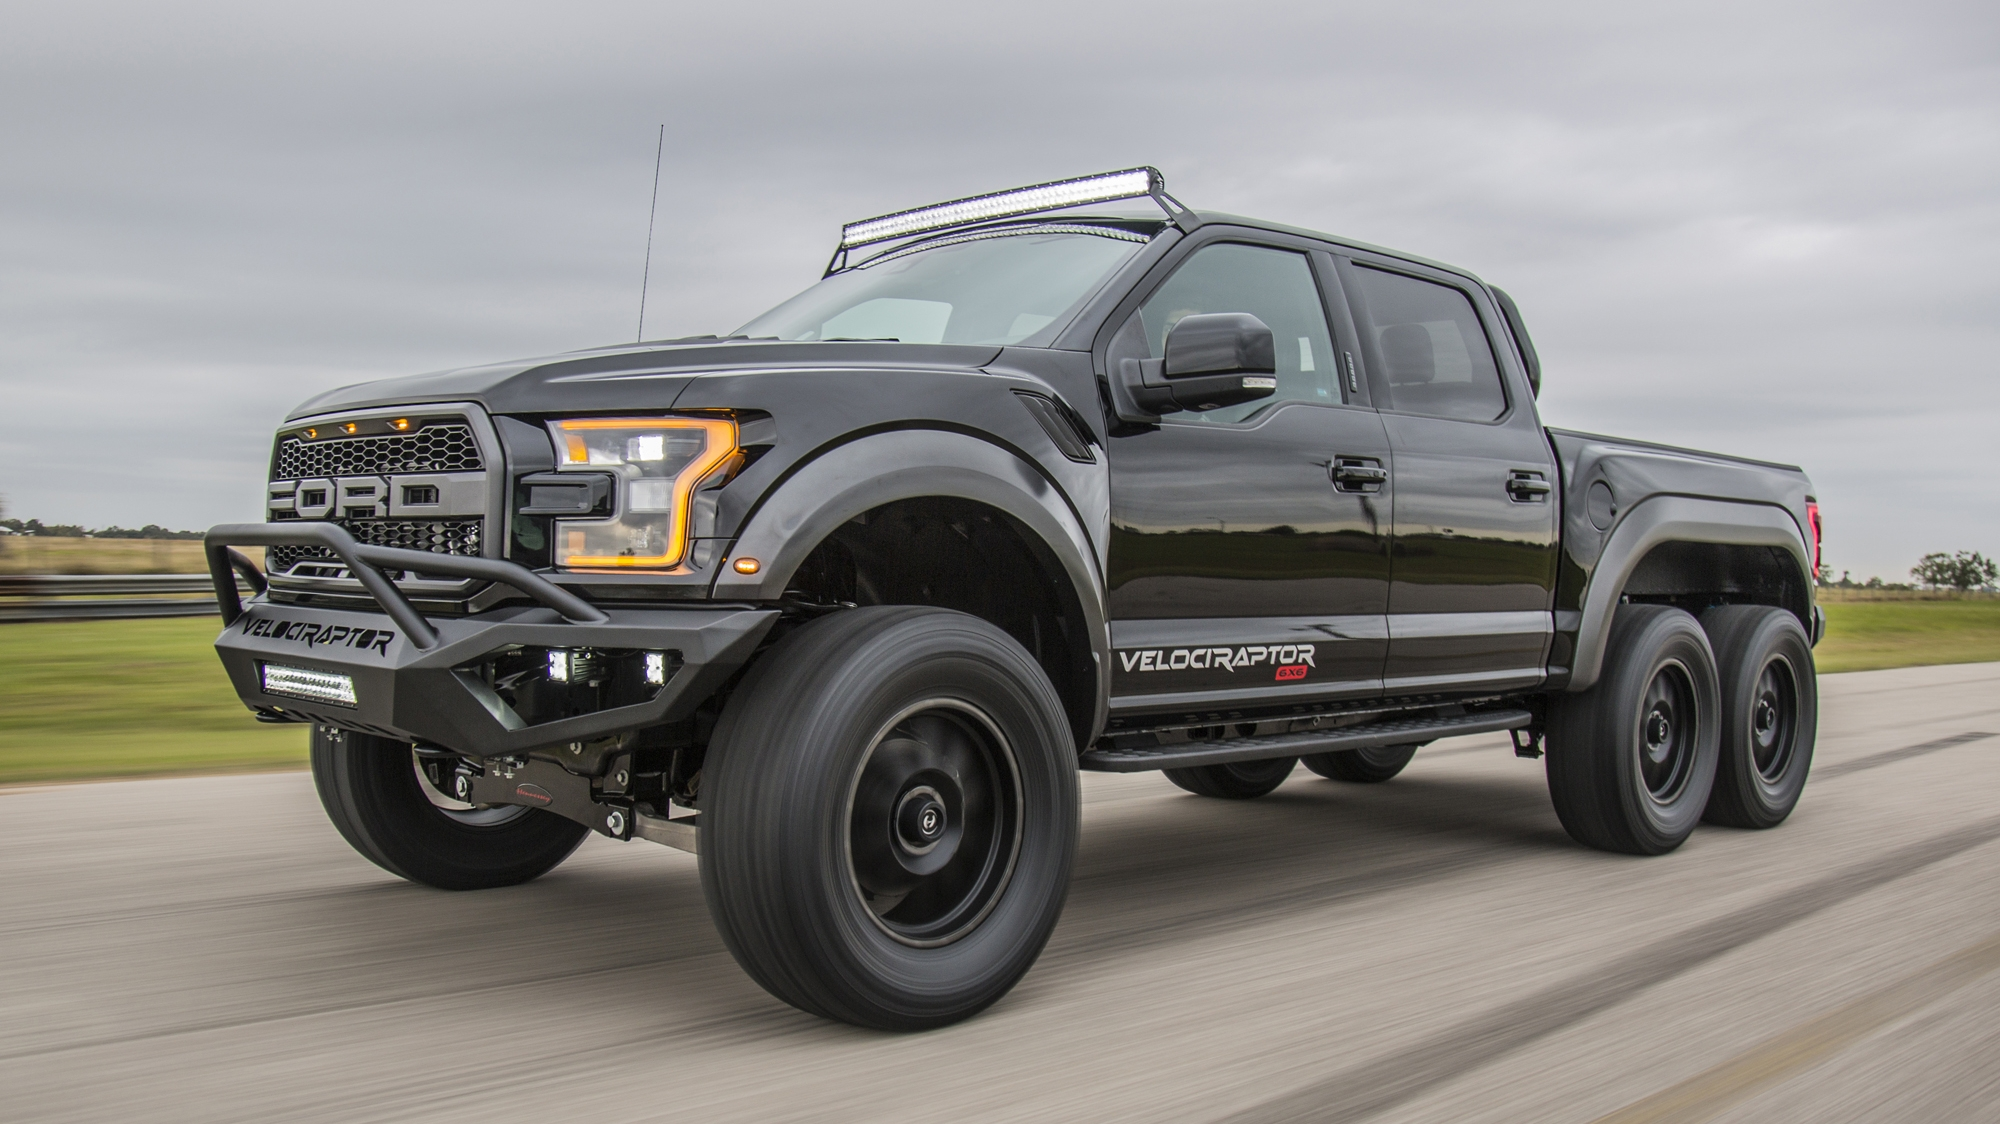 2018 Ford F-150 VelociRaptor 6x6 By Hennessey Performance ...